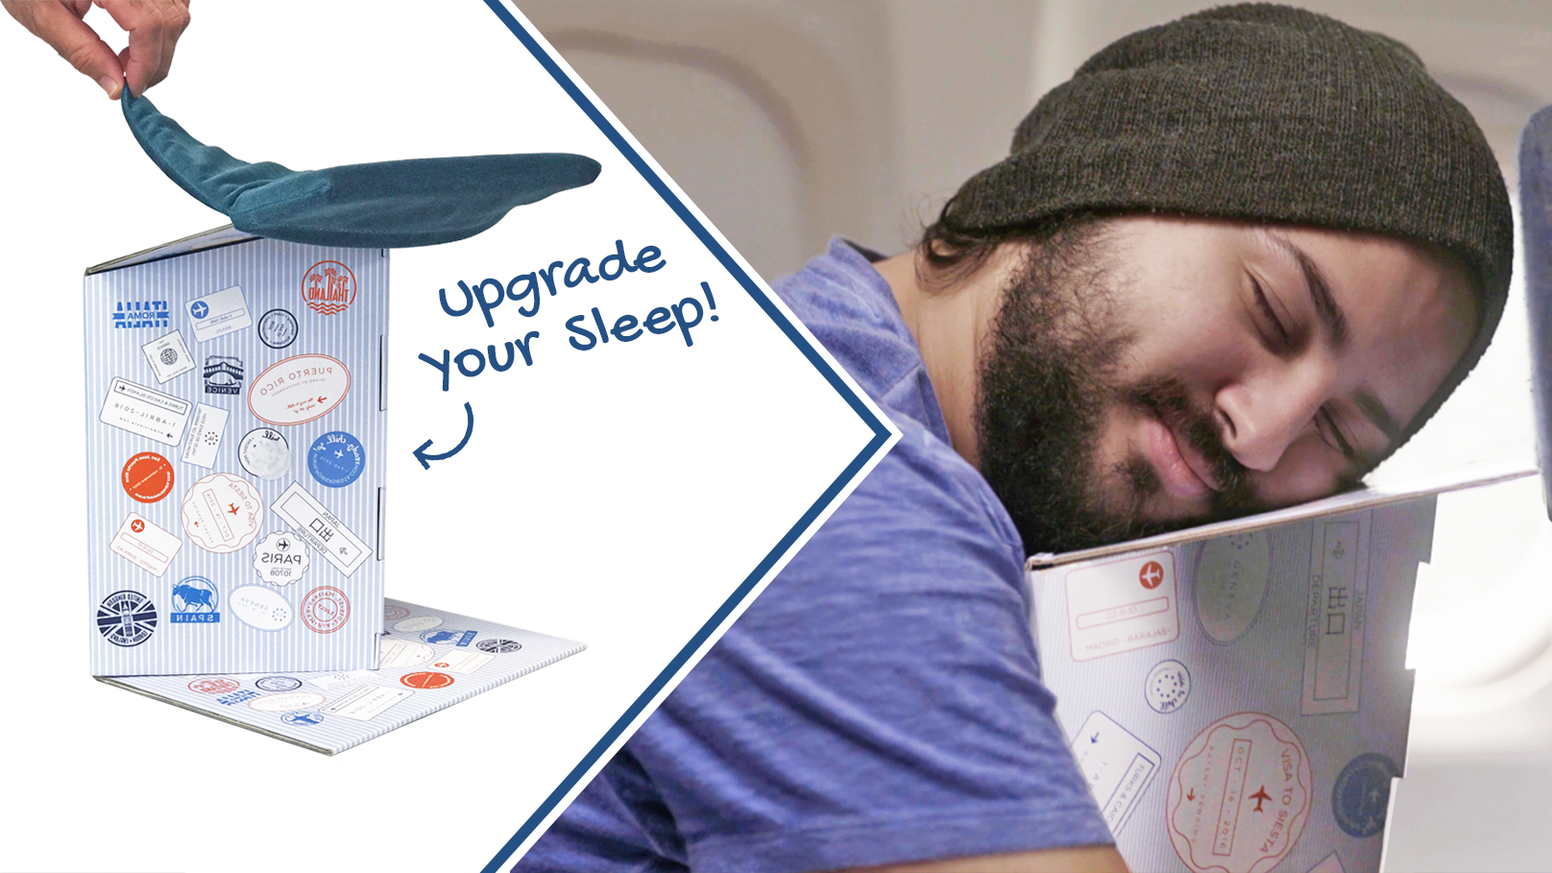 An eco-friendly, compact, ergonomic sleep solution designed by a rocket scientist. Get the best rest you've ever had while traveling!